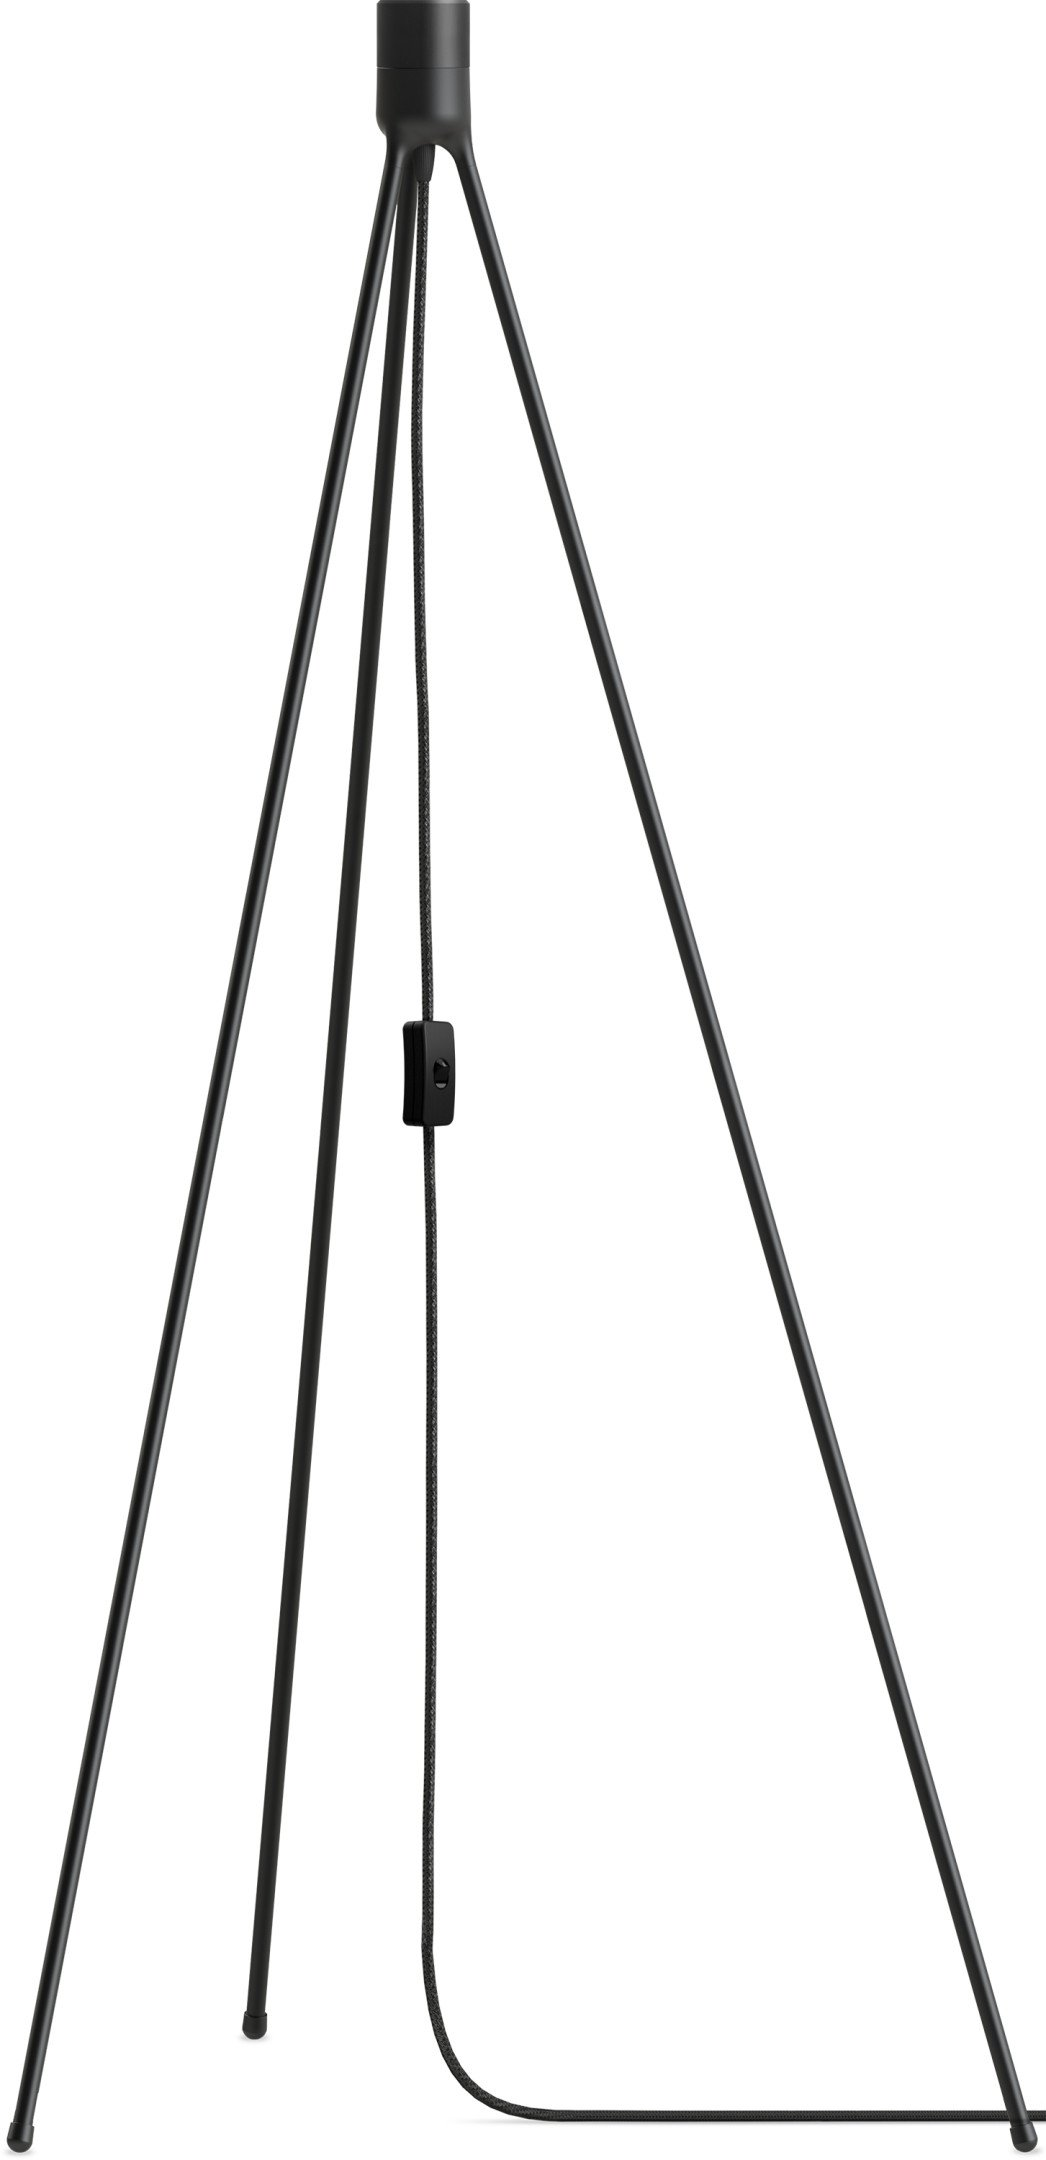 Tripod Floor Lamp Stand Black by S. R. Christensen for UMAGE